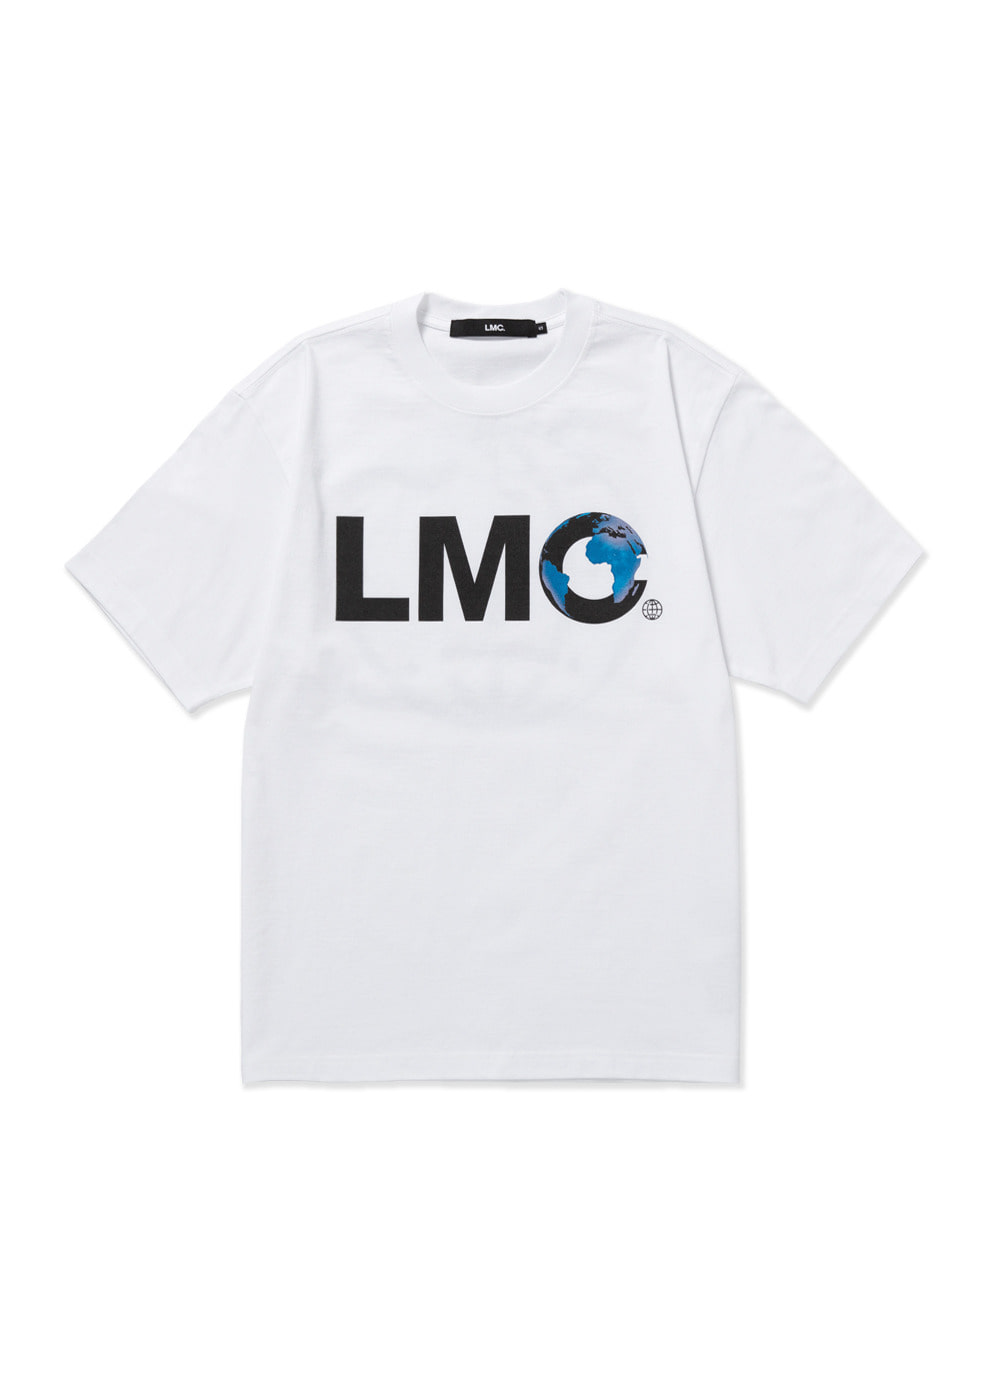 LMC EARTH LOGO TEE white